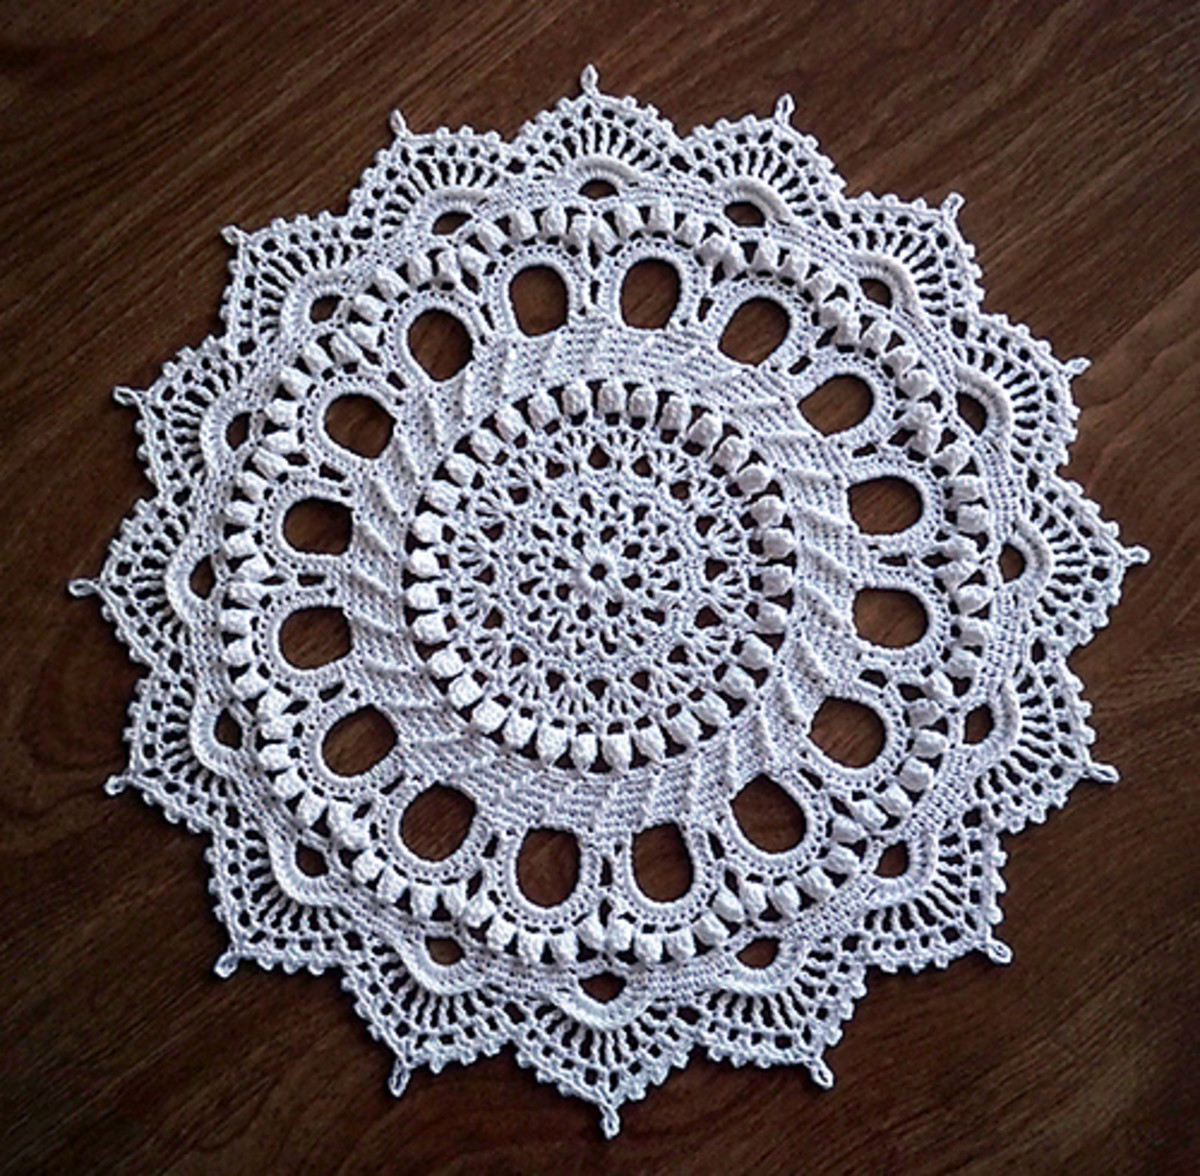 SPLENDID Doily by Patricia Kristoffersen